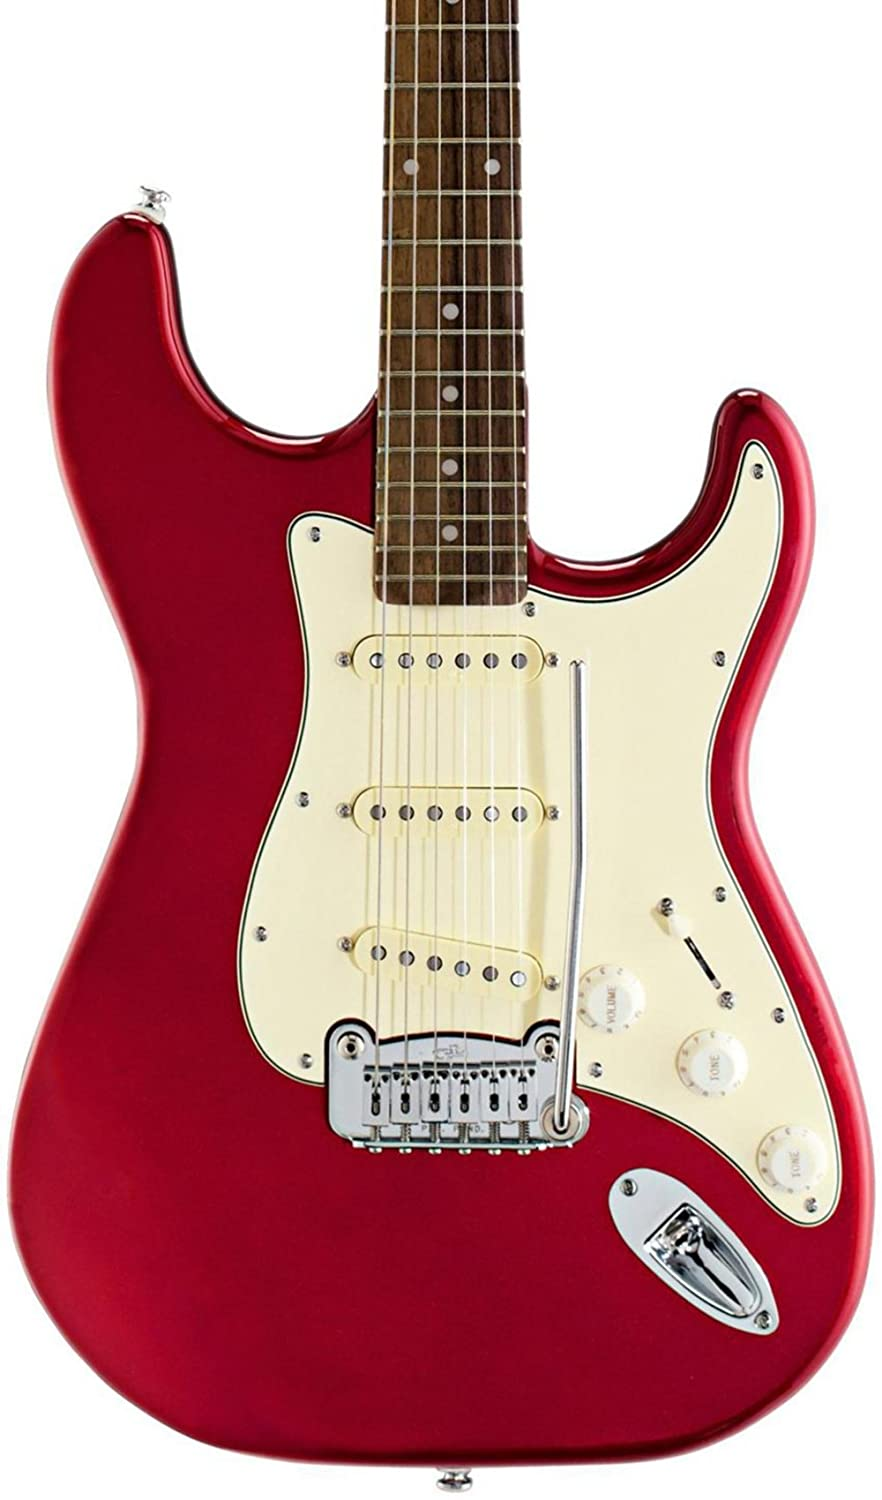 Gl Tribute Legacy Electric Guitar Candy Apple Red Notes On Neck Diagram Car Tuning Rosewood Fretboard Musical Instruments